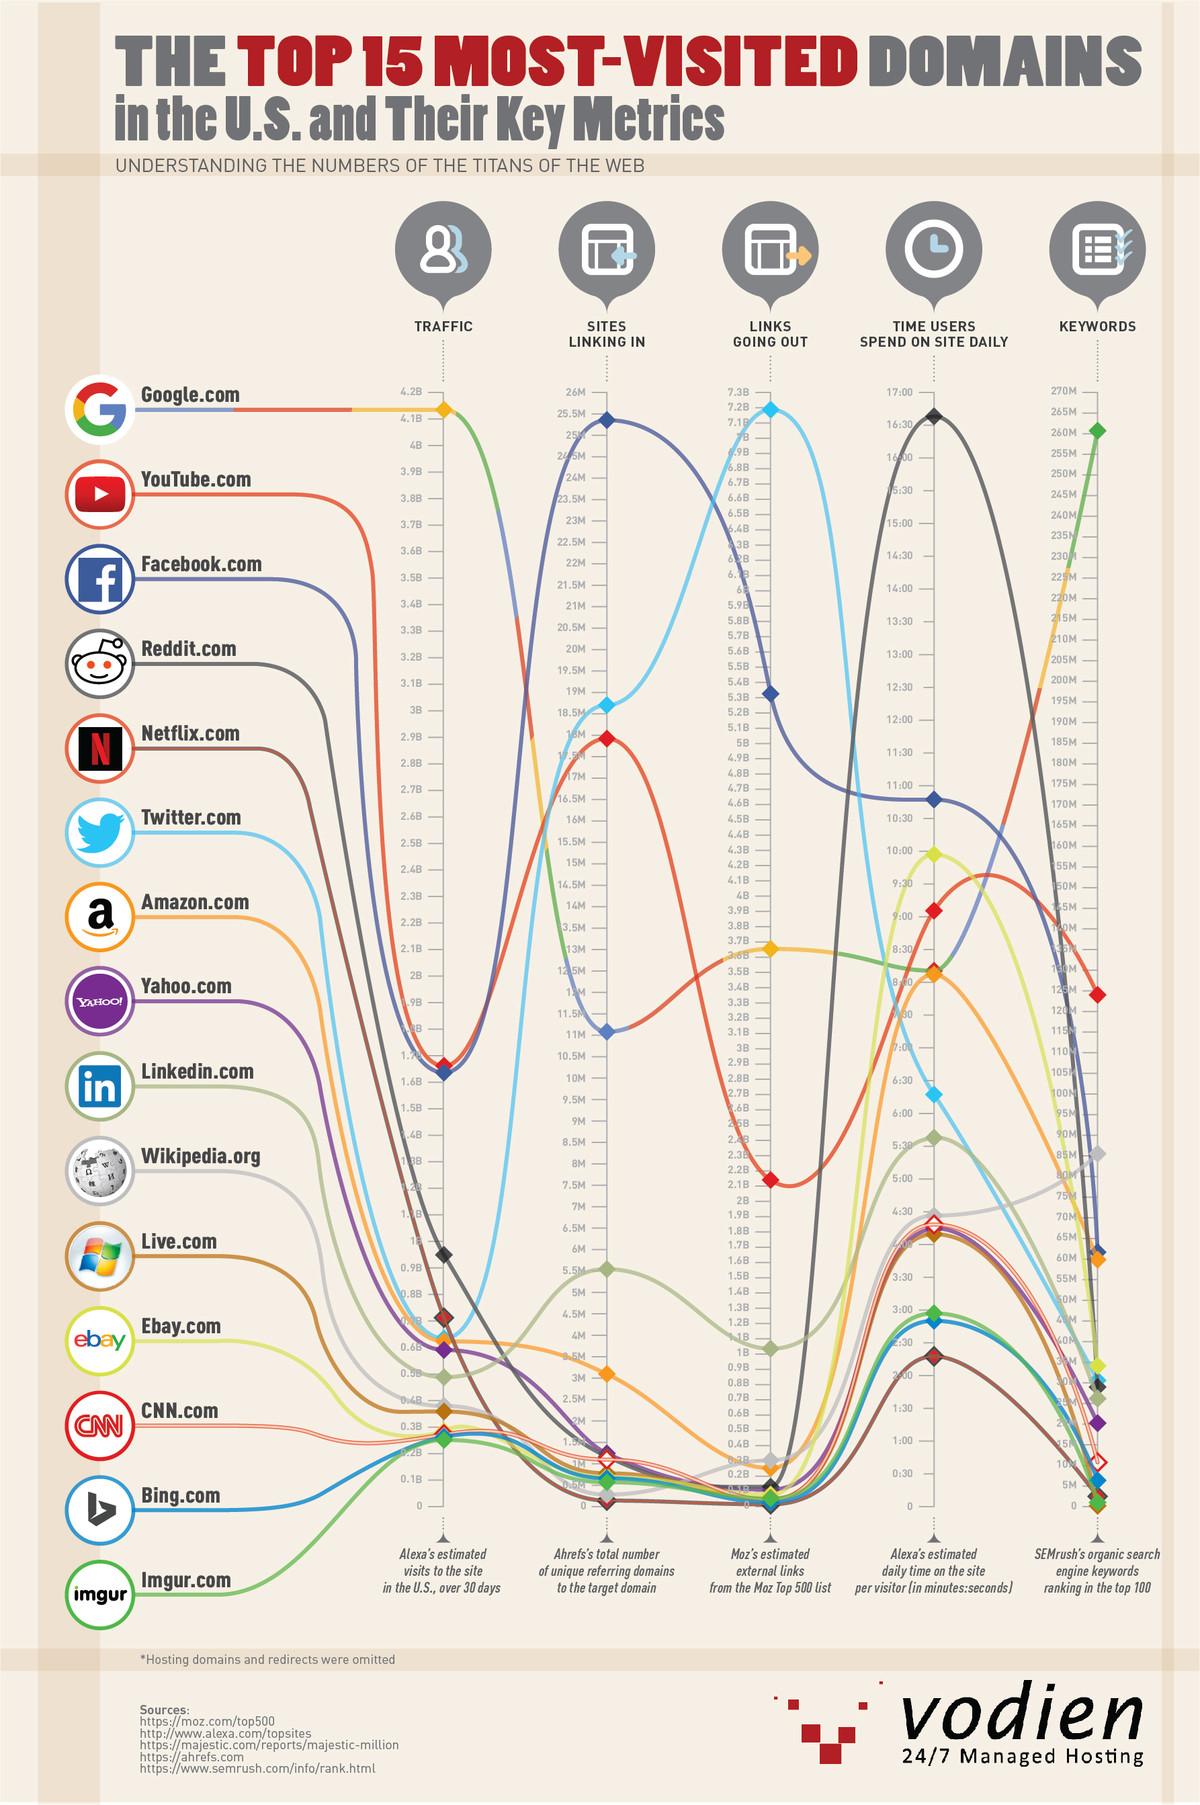 The Top 15 Most-Visited Domains in the U.S. and their Key Metrics. Understanding the numbers of the titans of the web, like Google, YouTube, Facebook, and Netfl